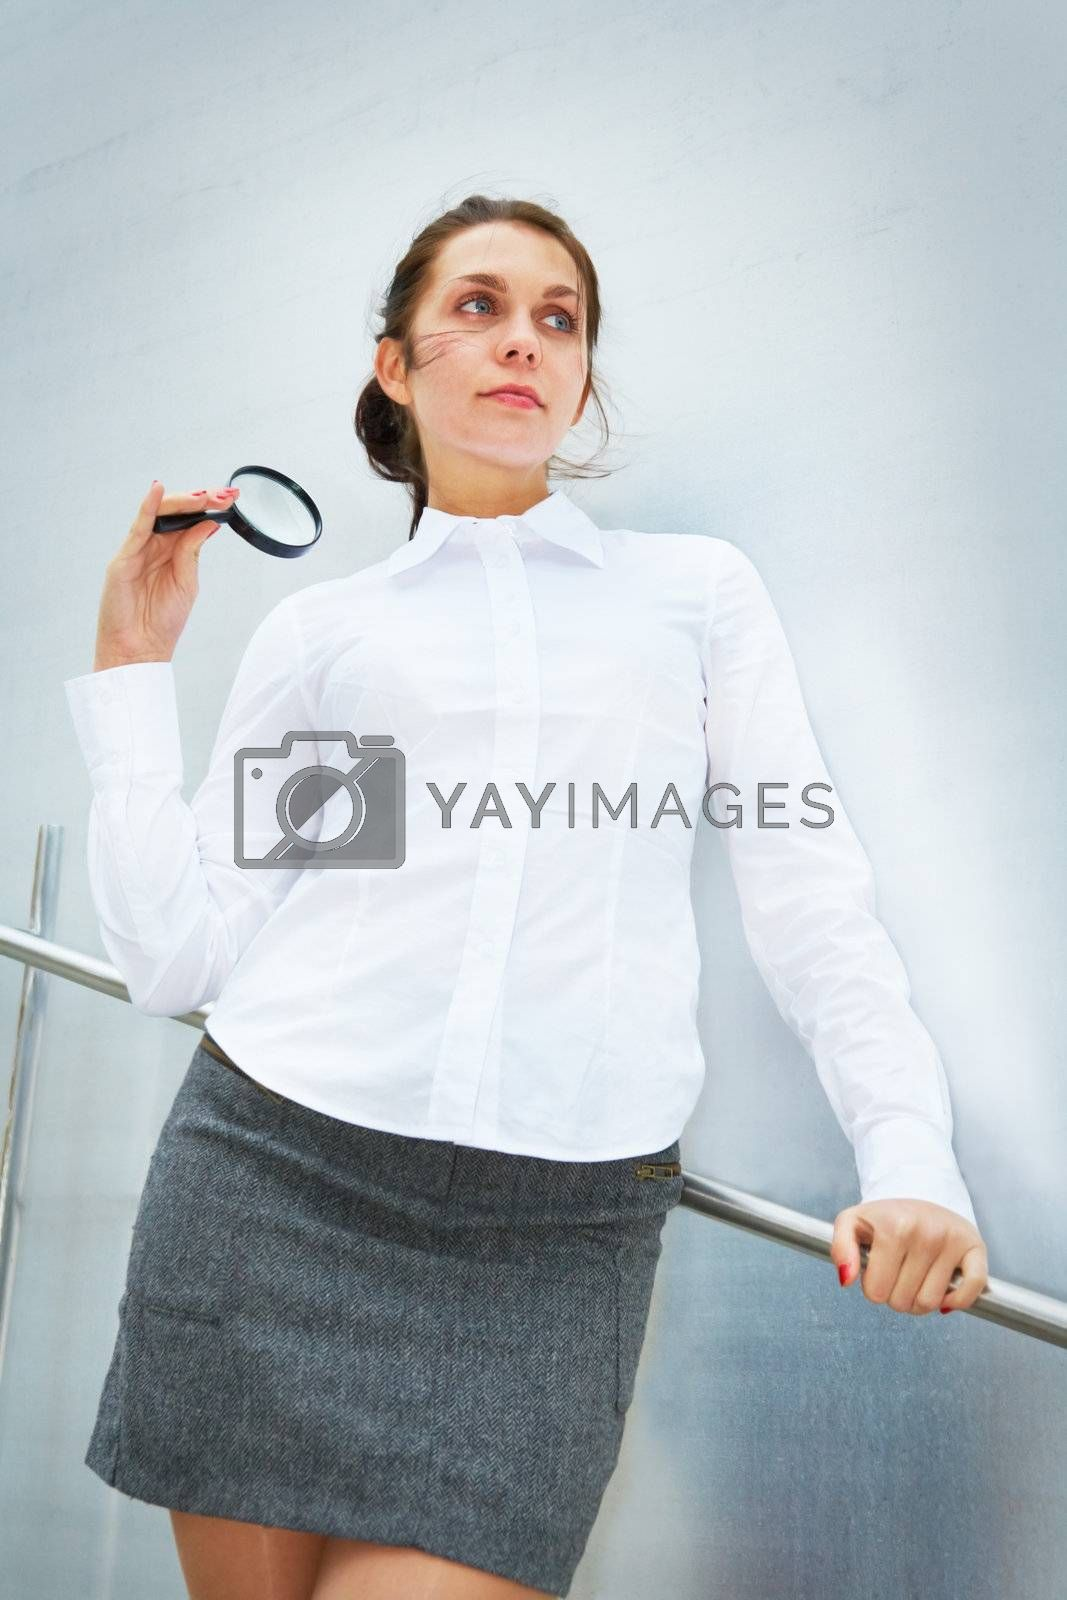 Royalty free image of Young Woman with Magnifying Glass by Luminis